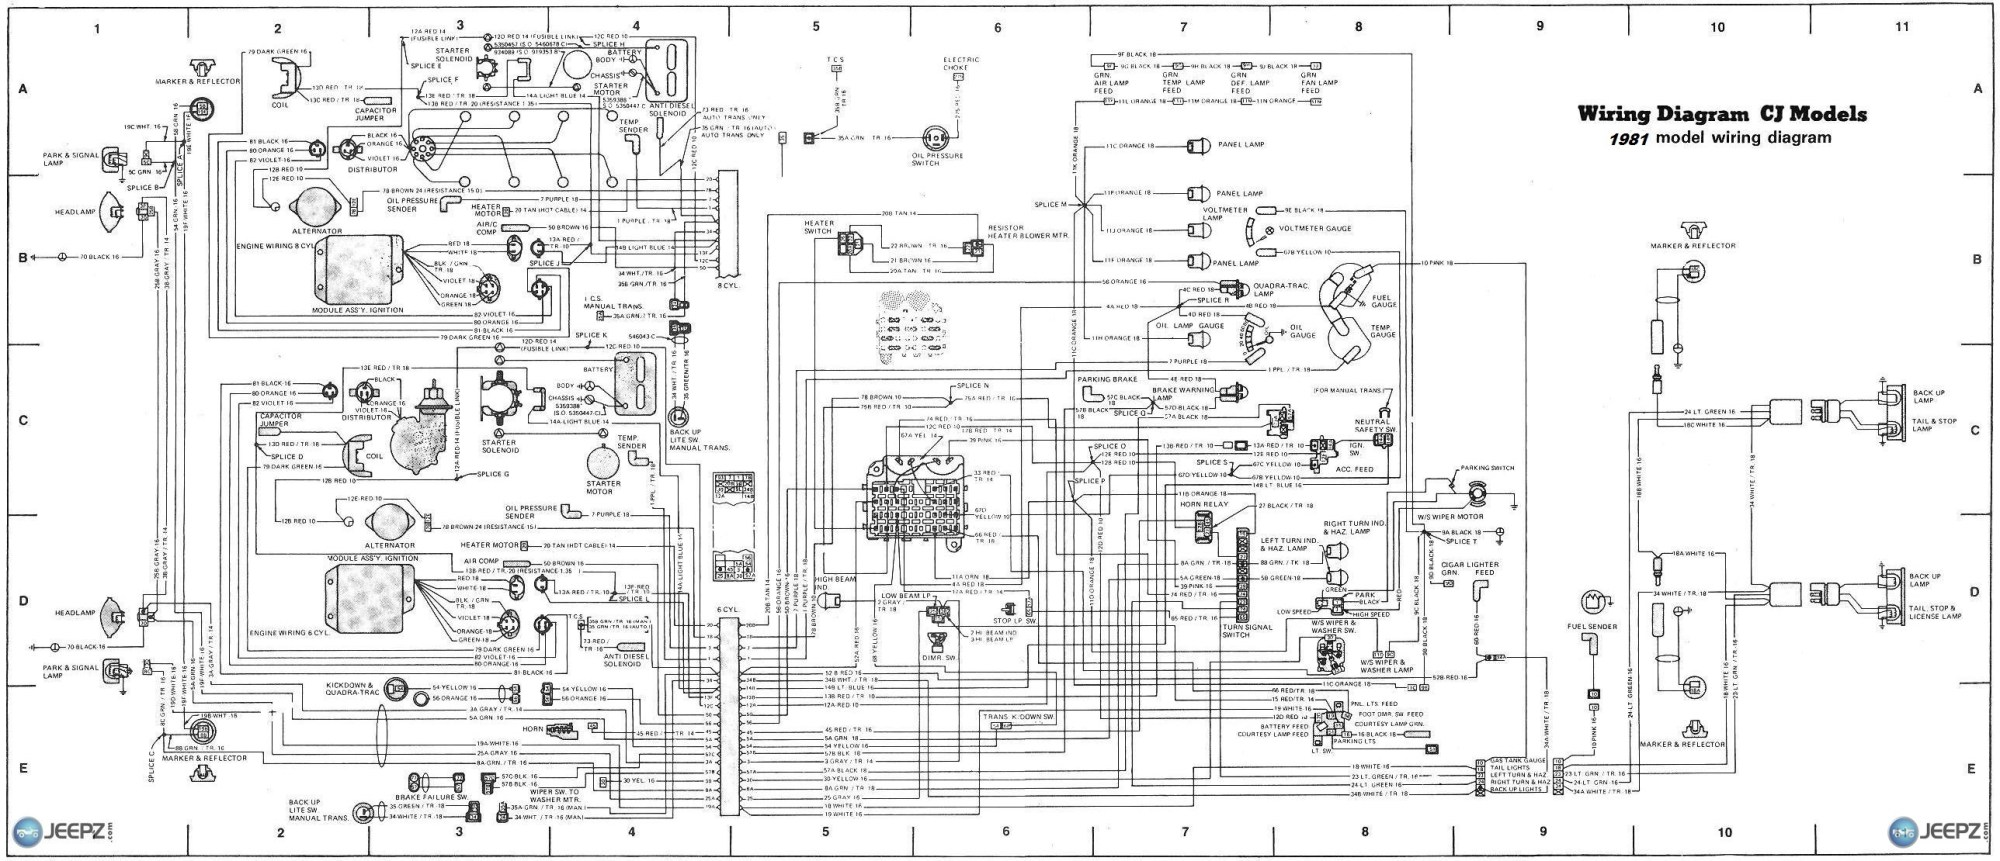 hight resolution of 1986 jeep wiring diagram wiring diagram third level jeep fuel injection wiring schematic 1977 cj7 dash